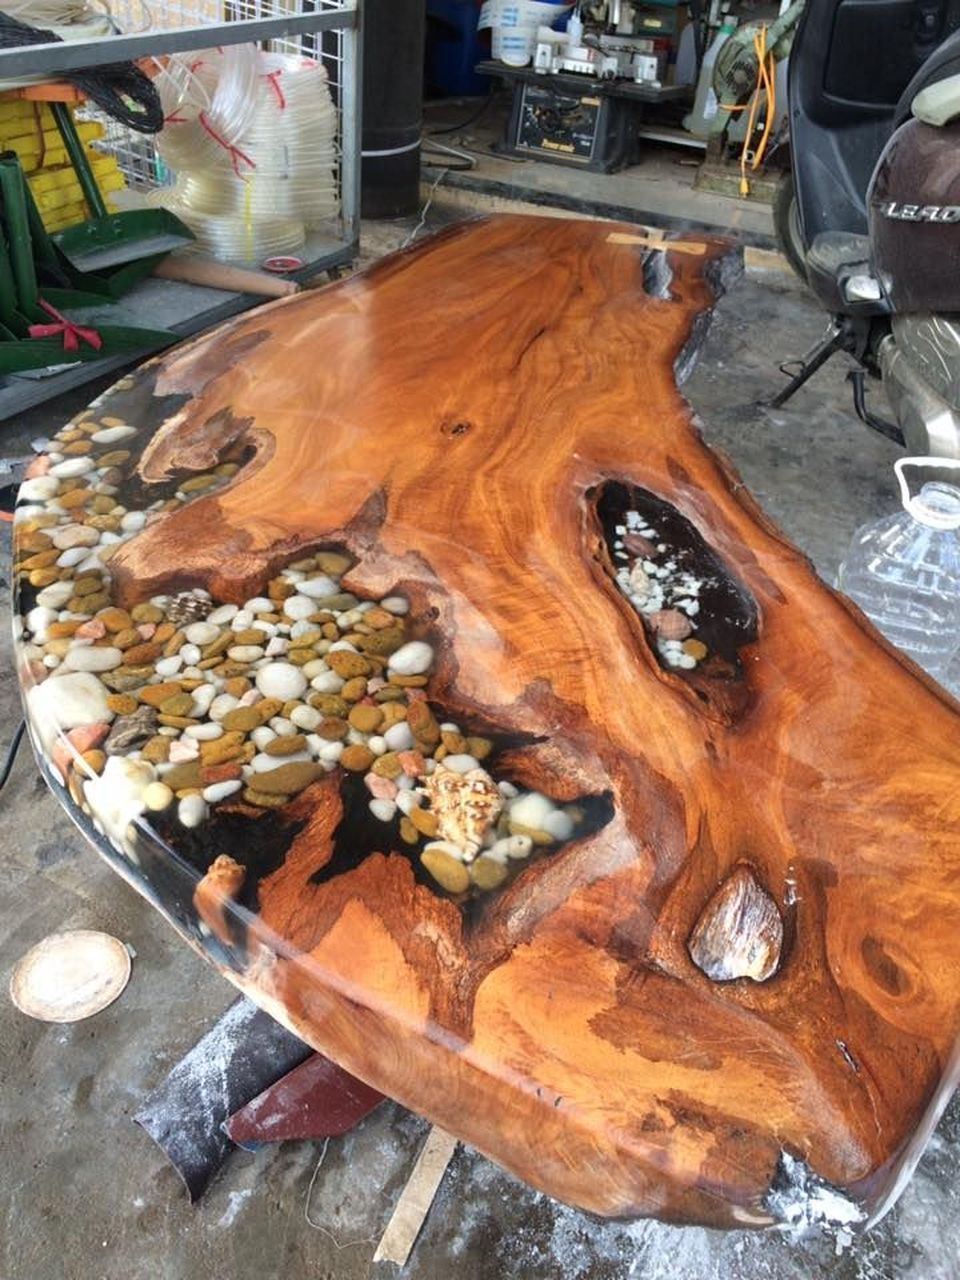 Muebles De Madera Y Resina Amazing Resin Wood Table For Your Home Furniture 2 Resin Art In